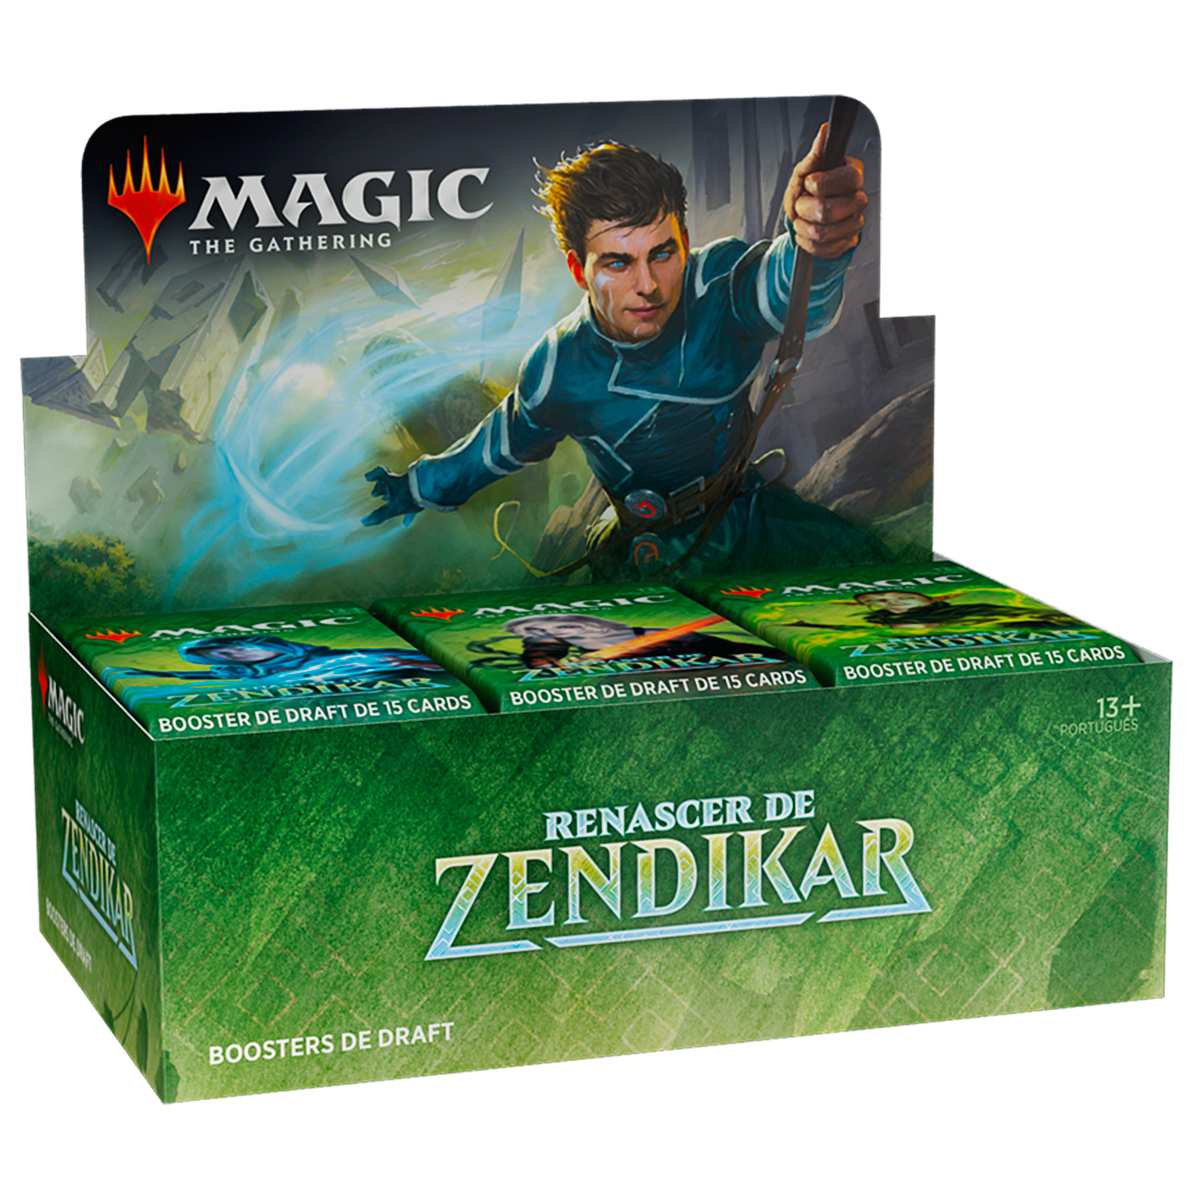 Magic Caixa de Booster Renascer de Zendikar